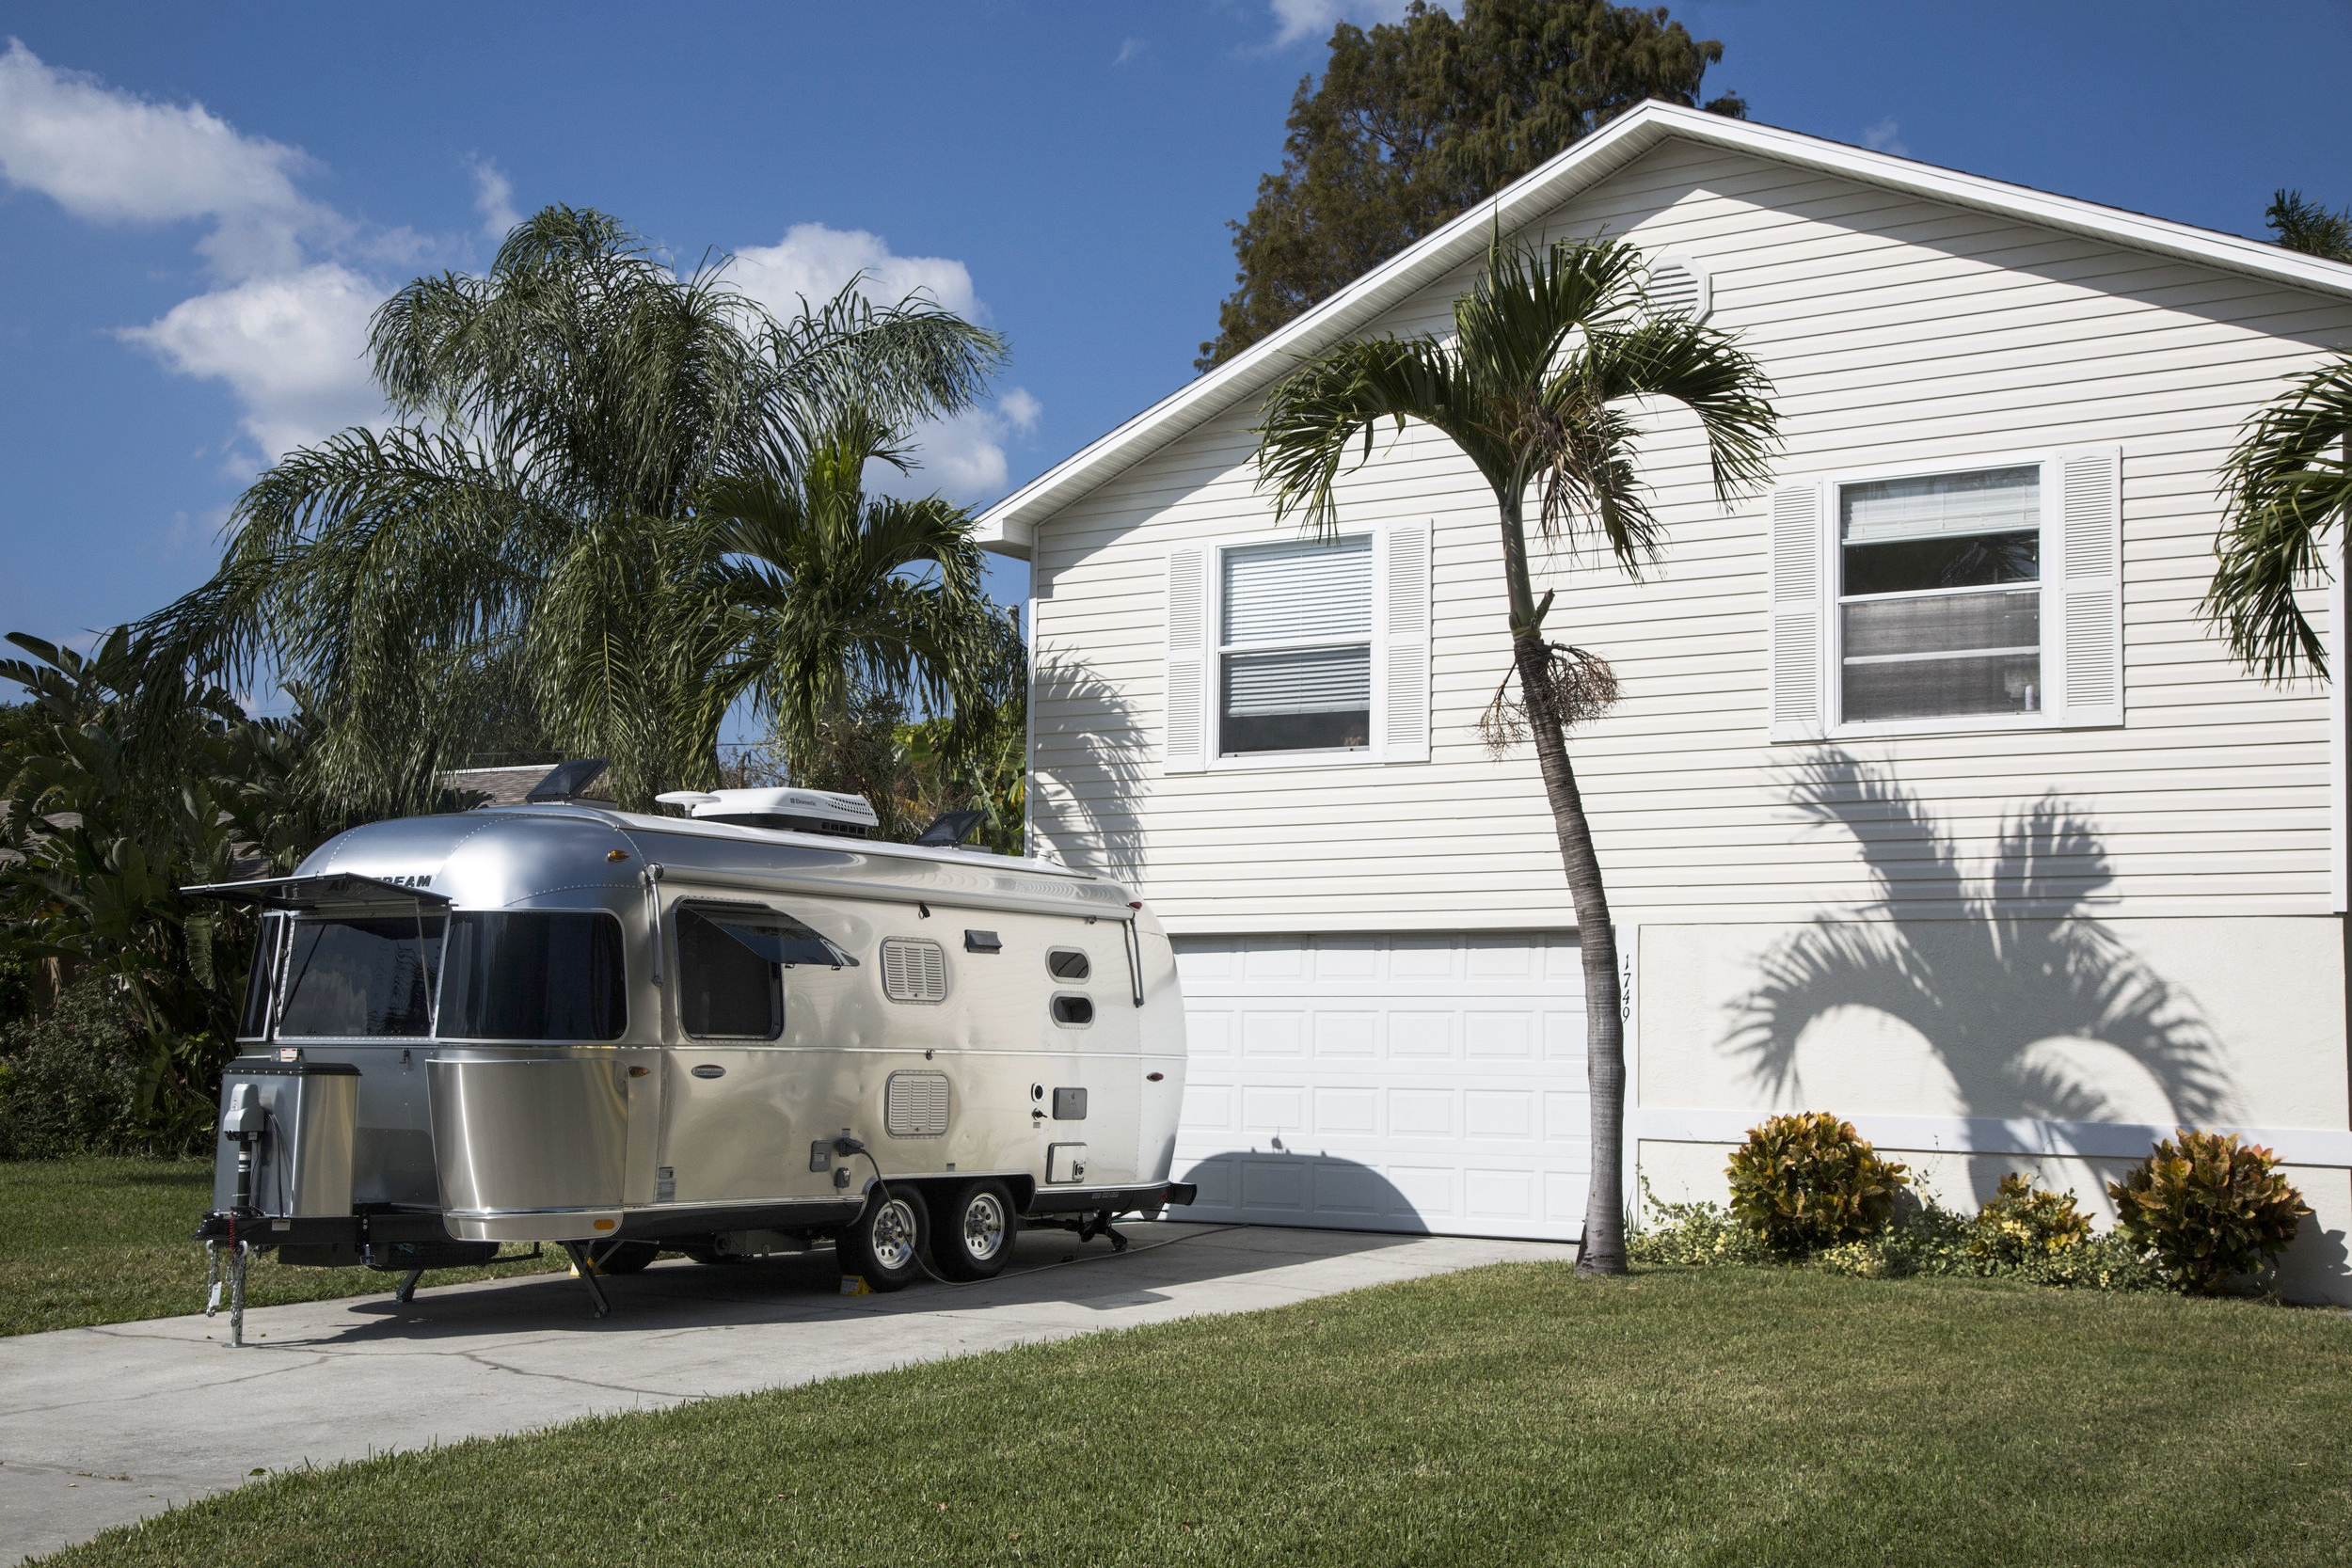 When it's parked on your property, the iconic Airstream is no longer a camper. It's an extra bedroom and bathroom for your overnight guests. And it's delivered to your home with the amenities of a comfortable hotel room.